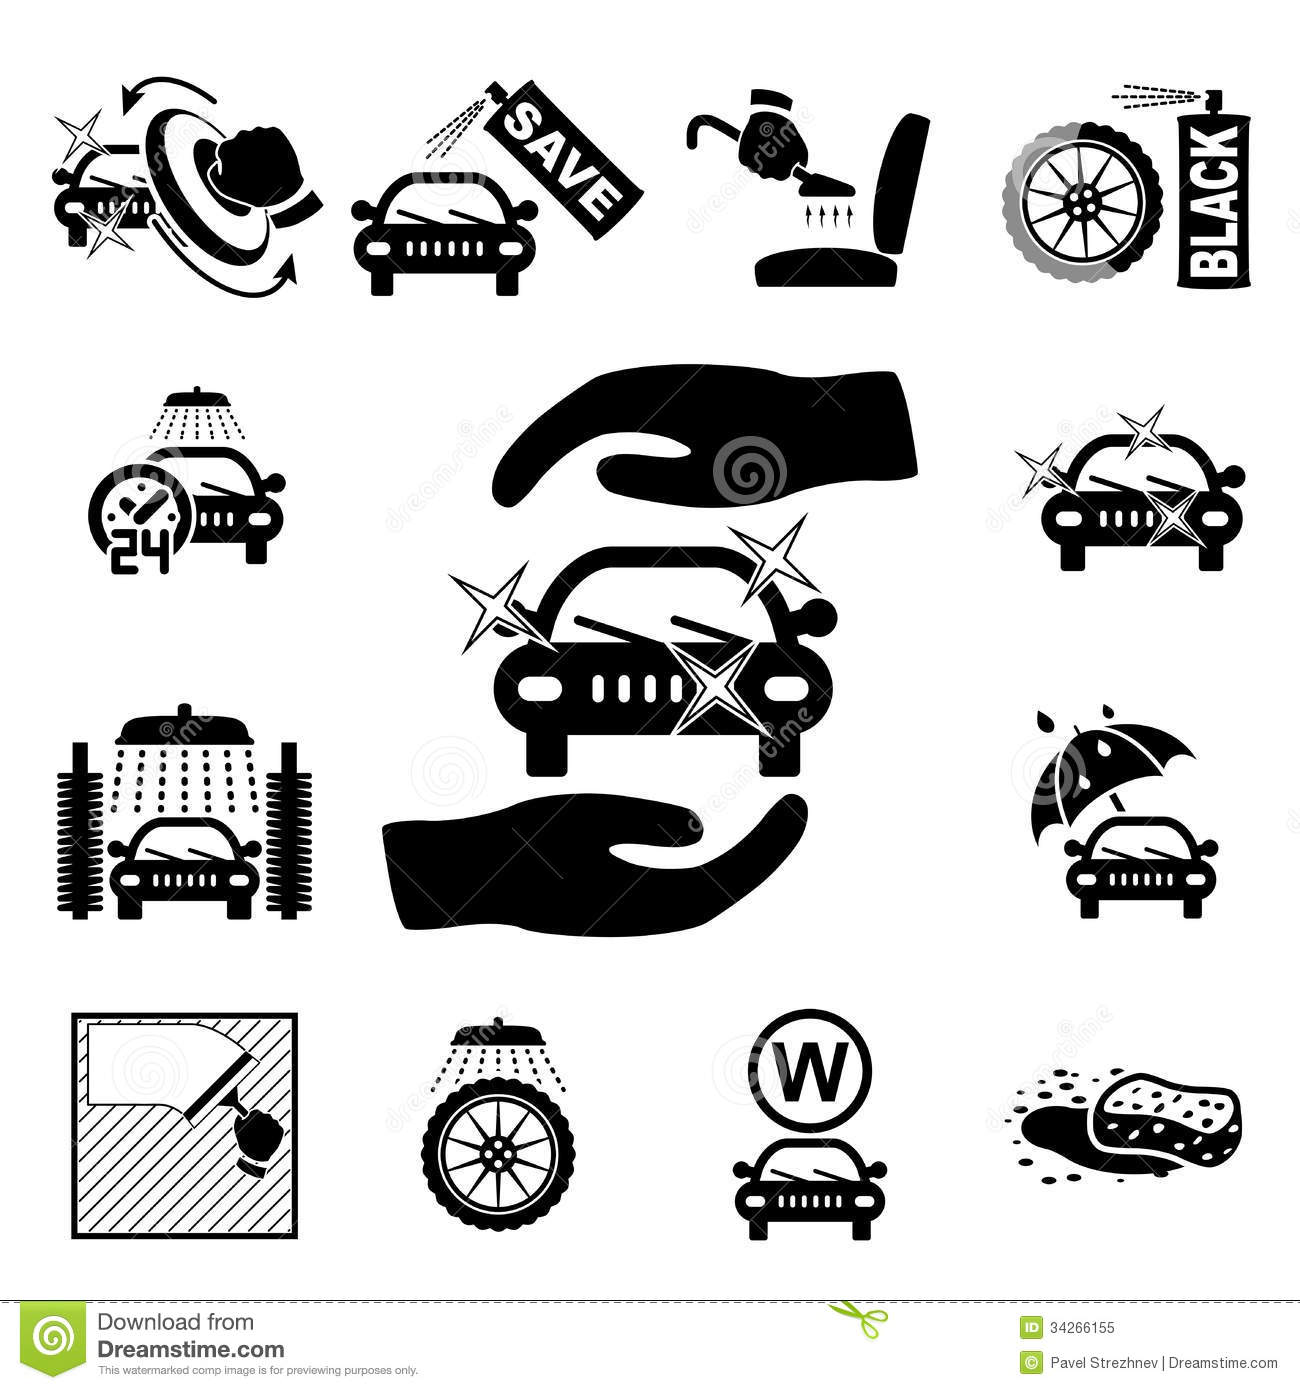 How To Draw The Farmer From Shaun The Sheep Step By Step furthermore Daimler Takes 10 Stake In Tesla in addition Maximize Dc Dc Synchronous Buck Converter Performance likewise I0000H8jJ8QotgFc likewise 2009 11 01 archive. on top smart cars